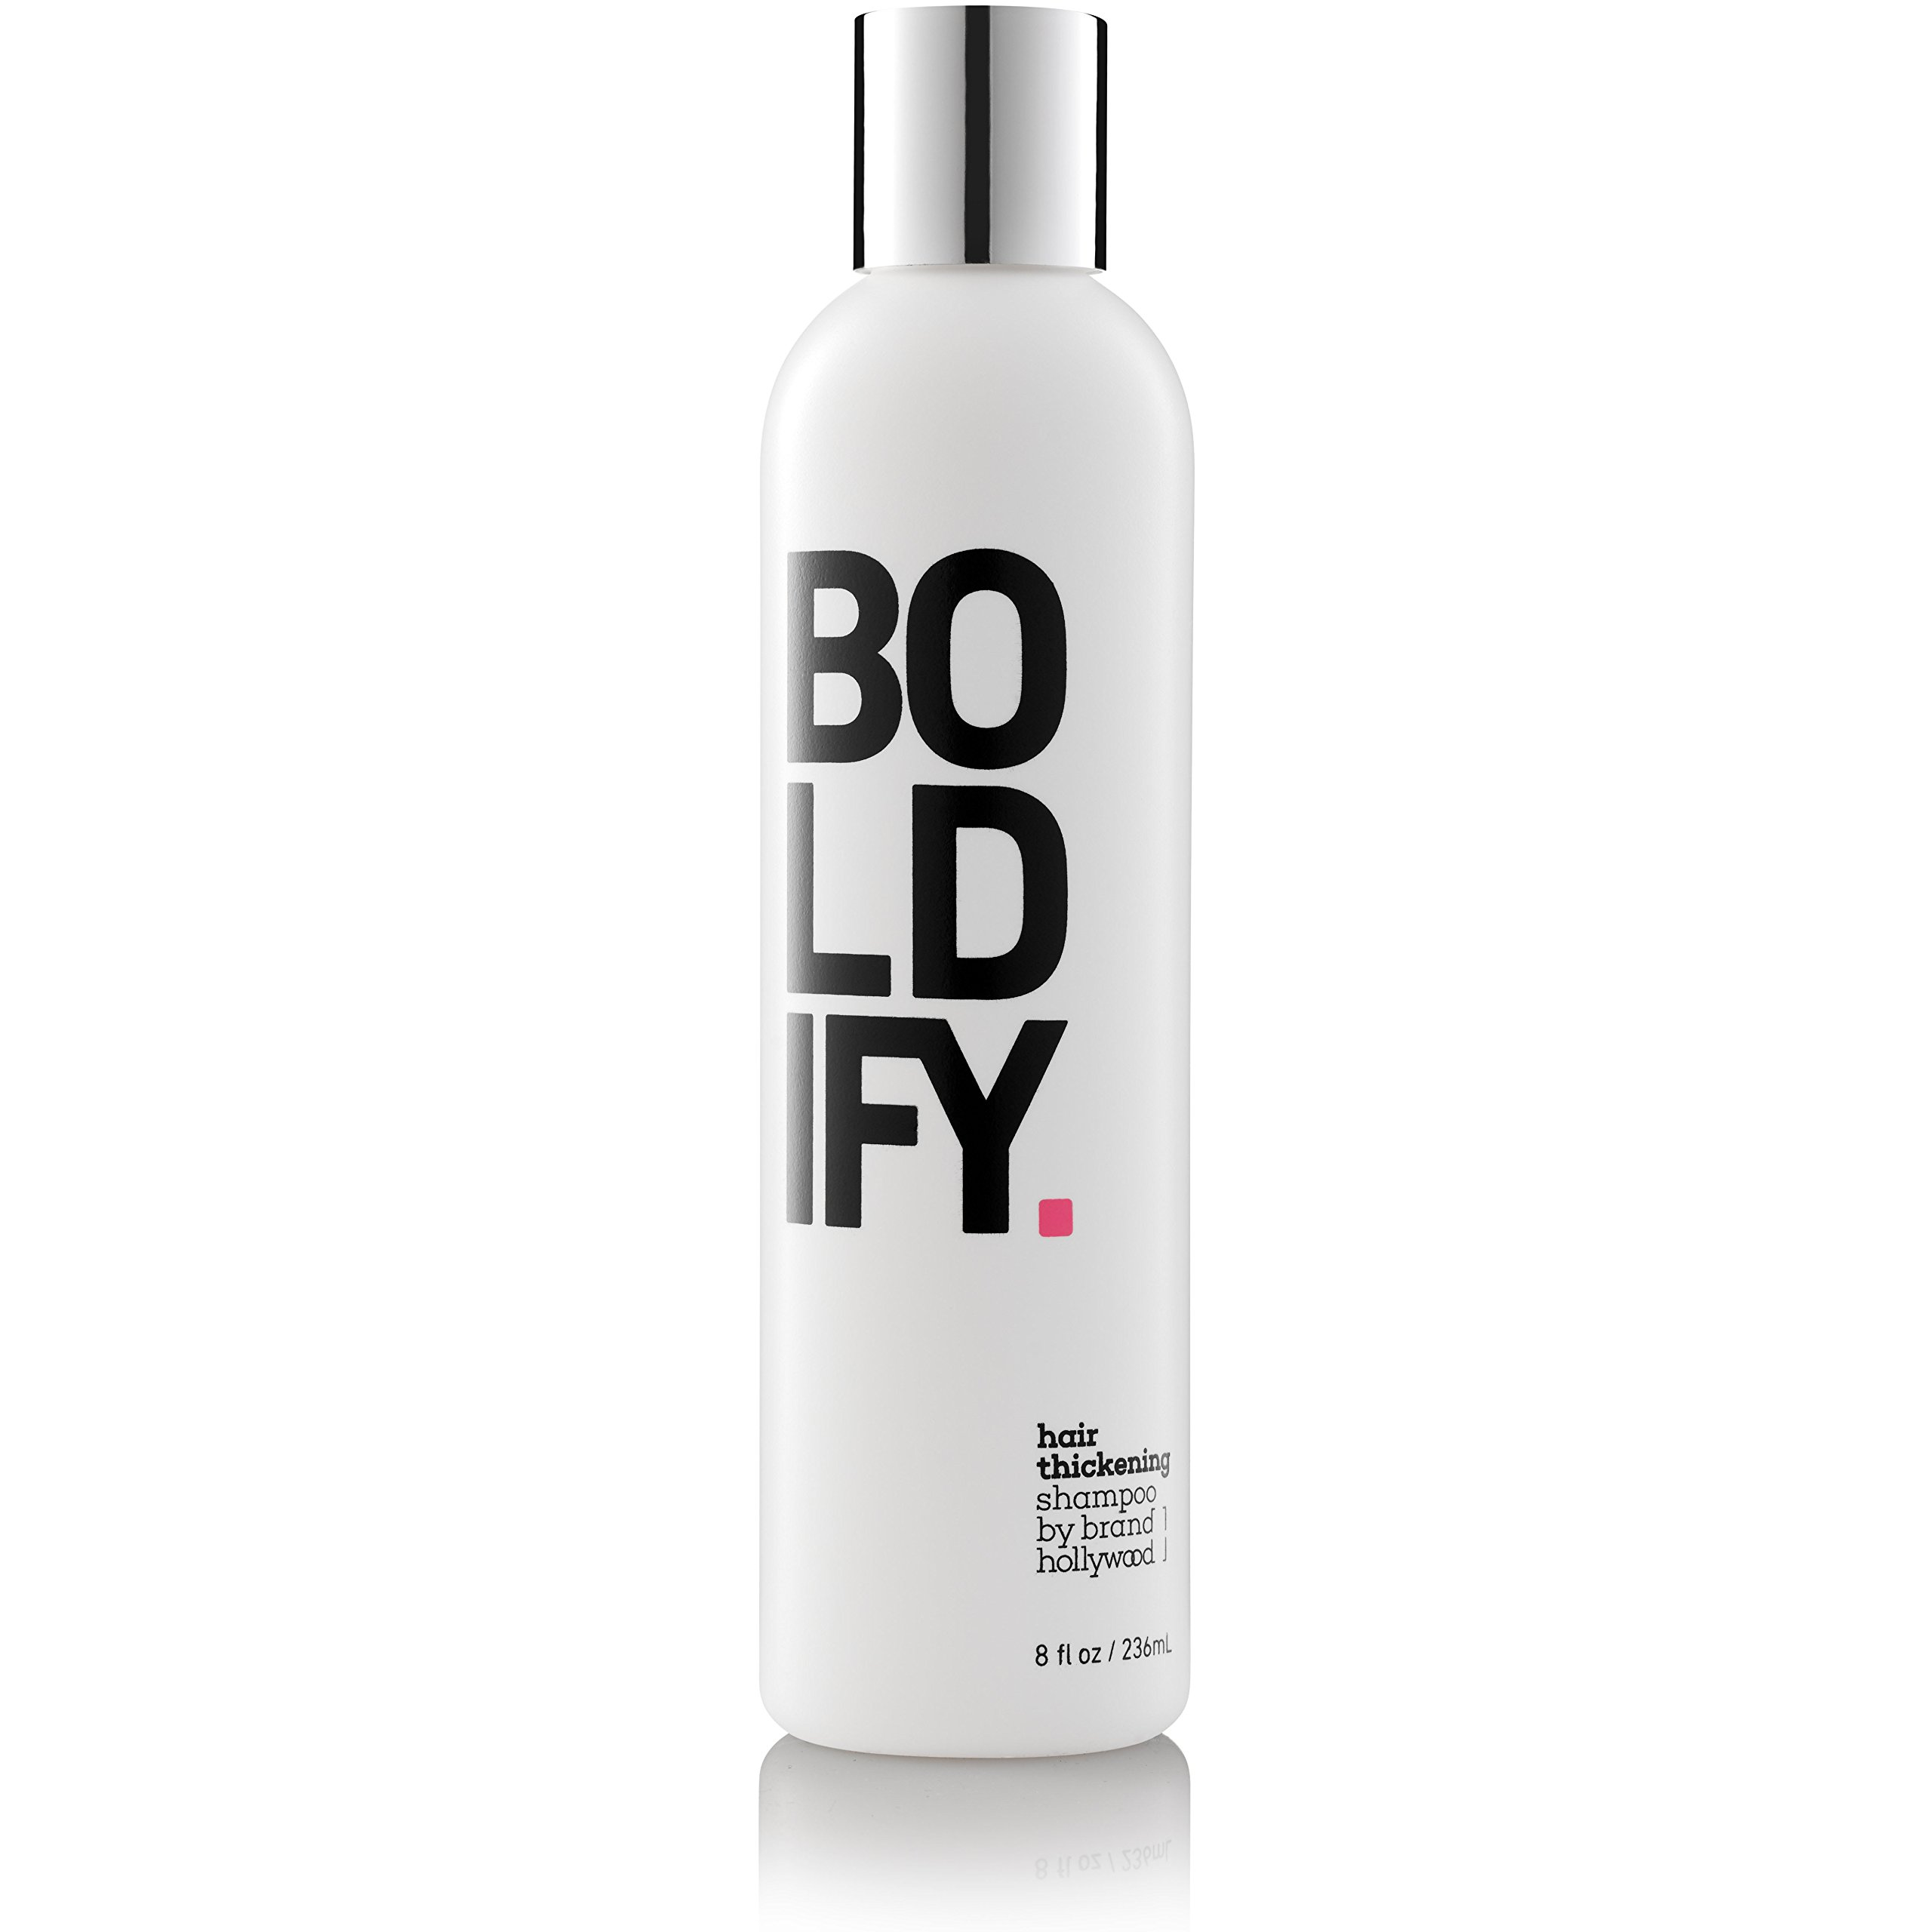 Hair Boost Shampoo with Biotin - Natural Hair Growth Complex Instantly Stimulates Thicker, Fuller Hair - Cruelty & Sulfate Free Hair Thickening Products for Women + Men - Boldify 8oz by Boldify